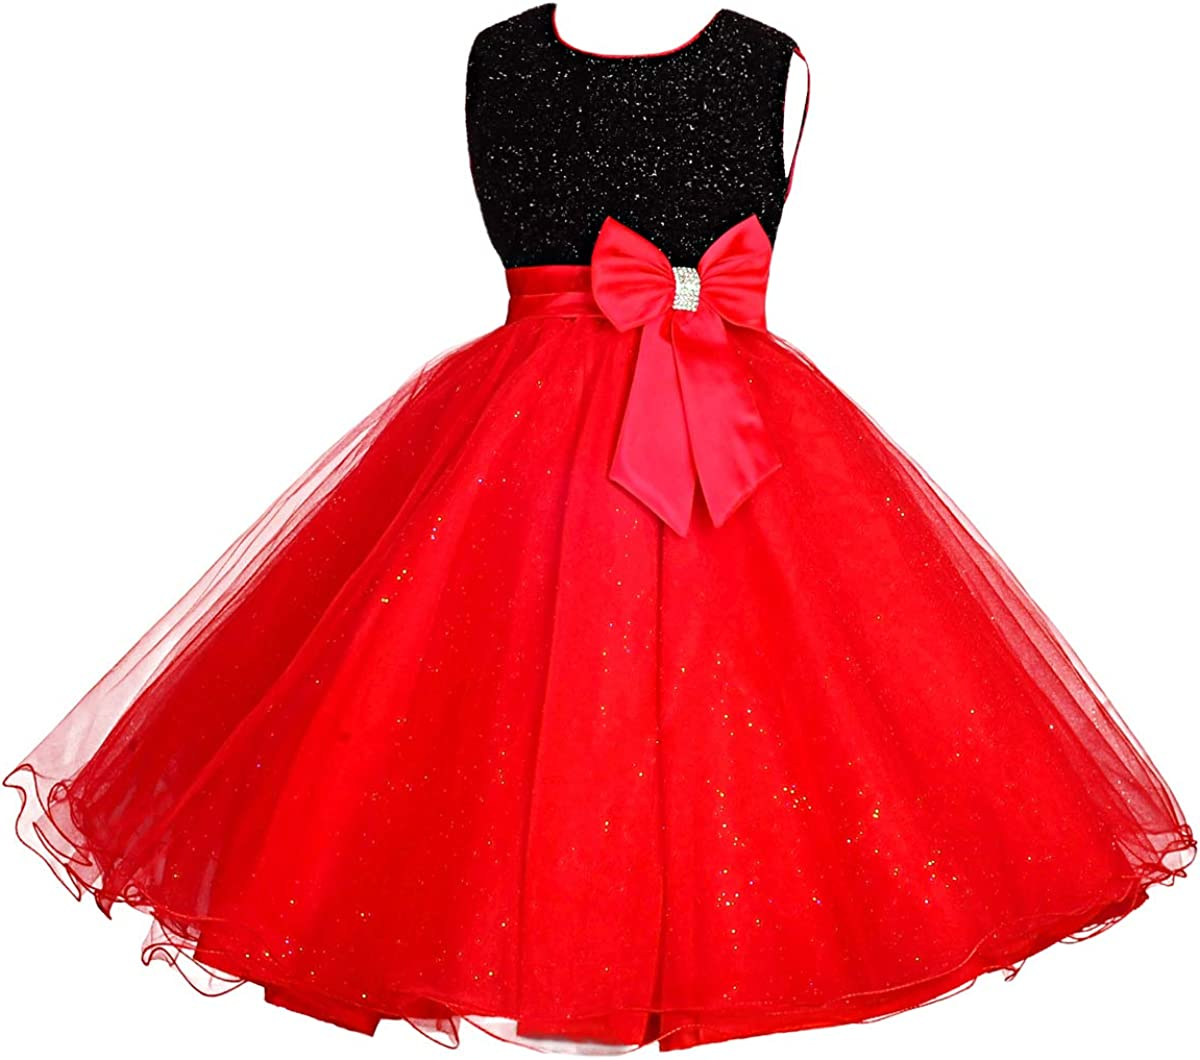 Lito Angels Shimmery Special Occasion Dresses Flower Girl Pageant Party Dress